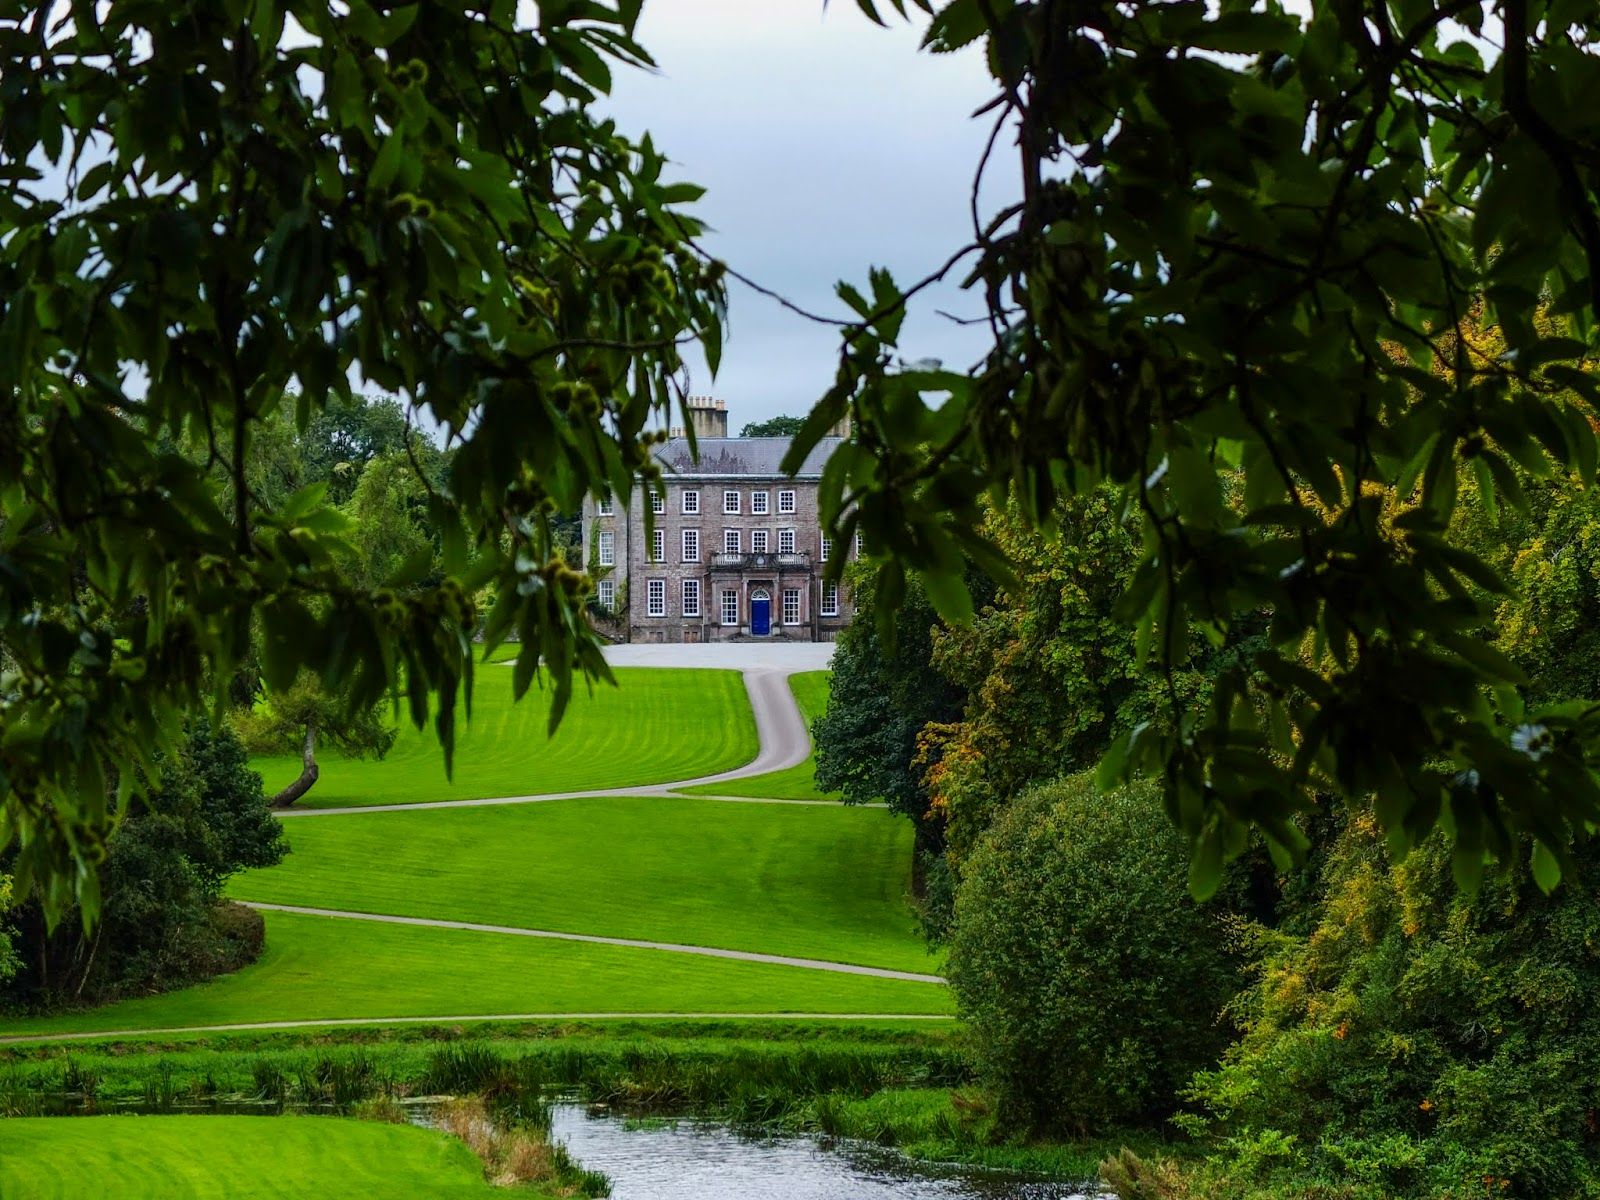 View of the Doneraile Castle behind branches of a chestnut tree.